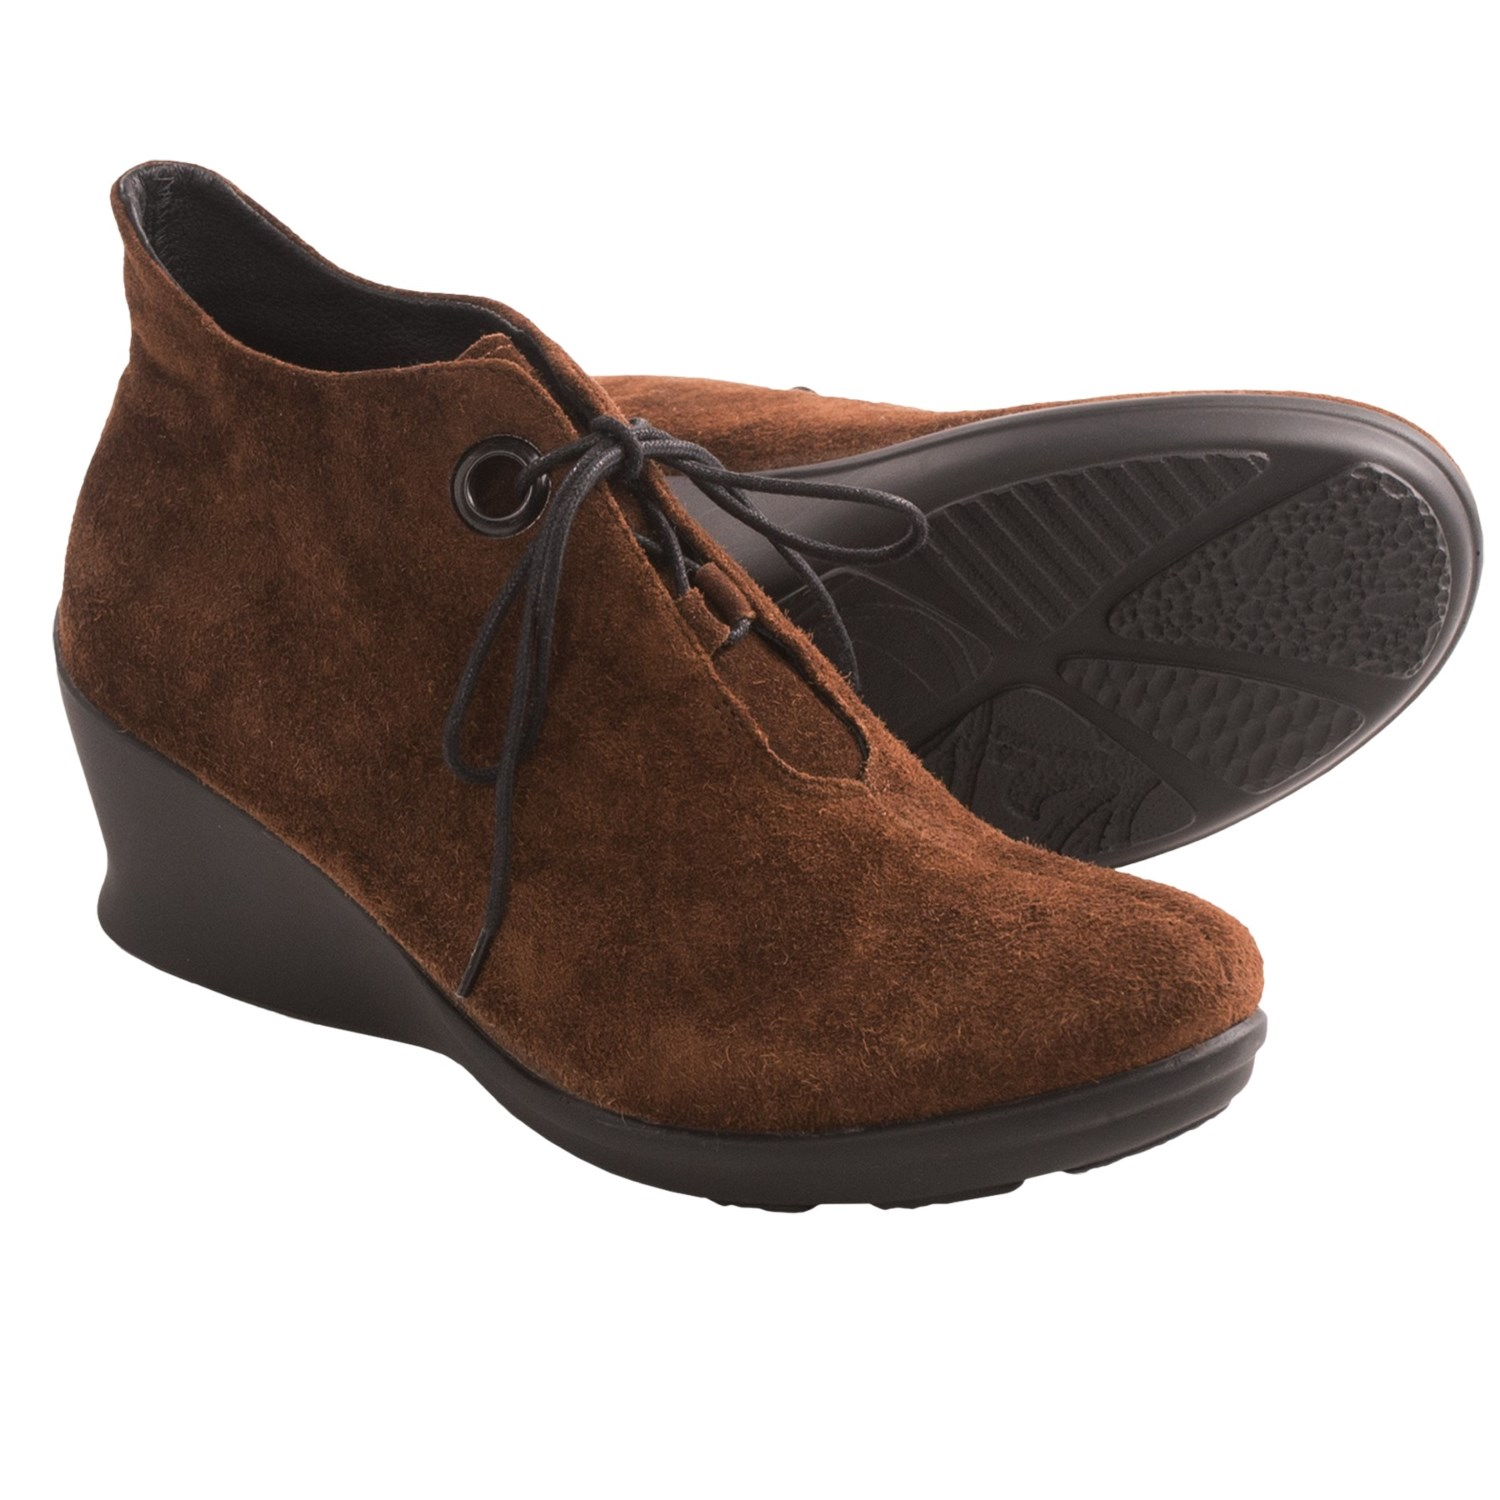 Wolky Hope Wedge Shoes (For Women) in Caf  Brown